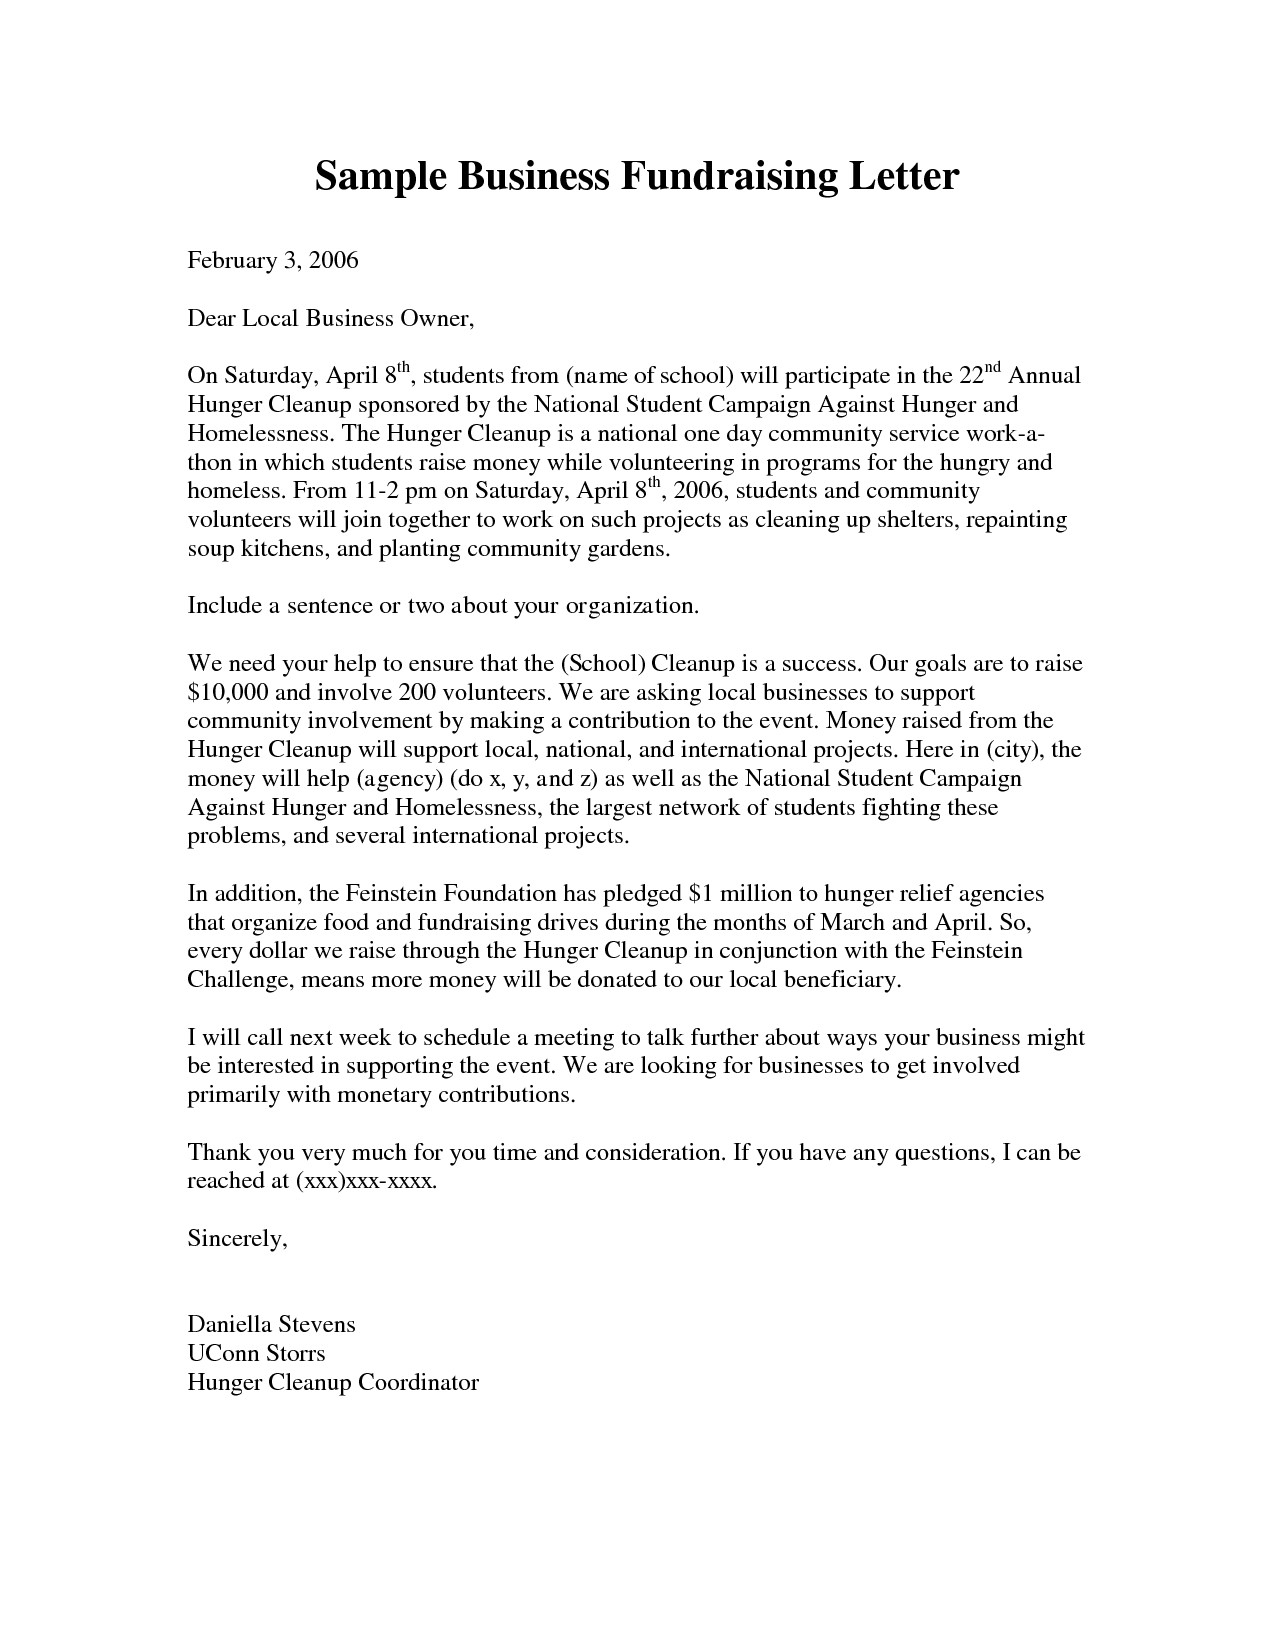 Car Donation Letter Template - Leave Absence Letter Template for School Copy School Application